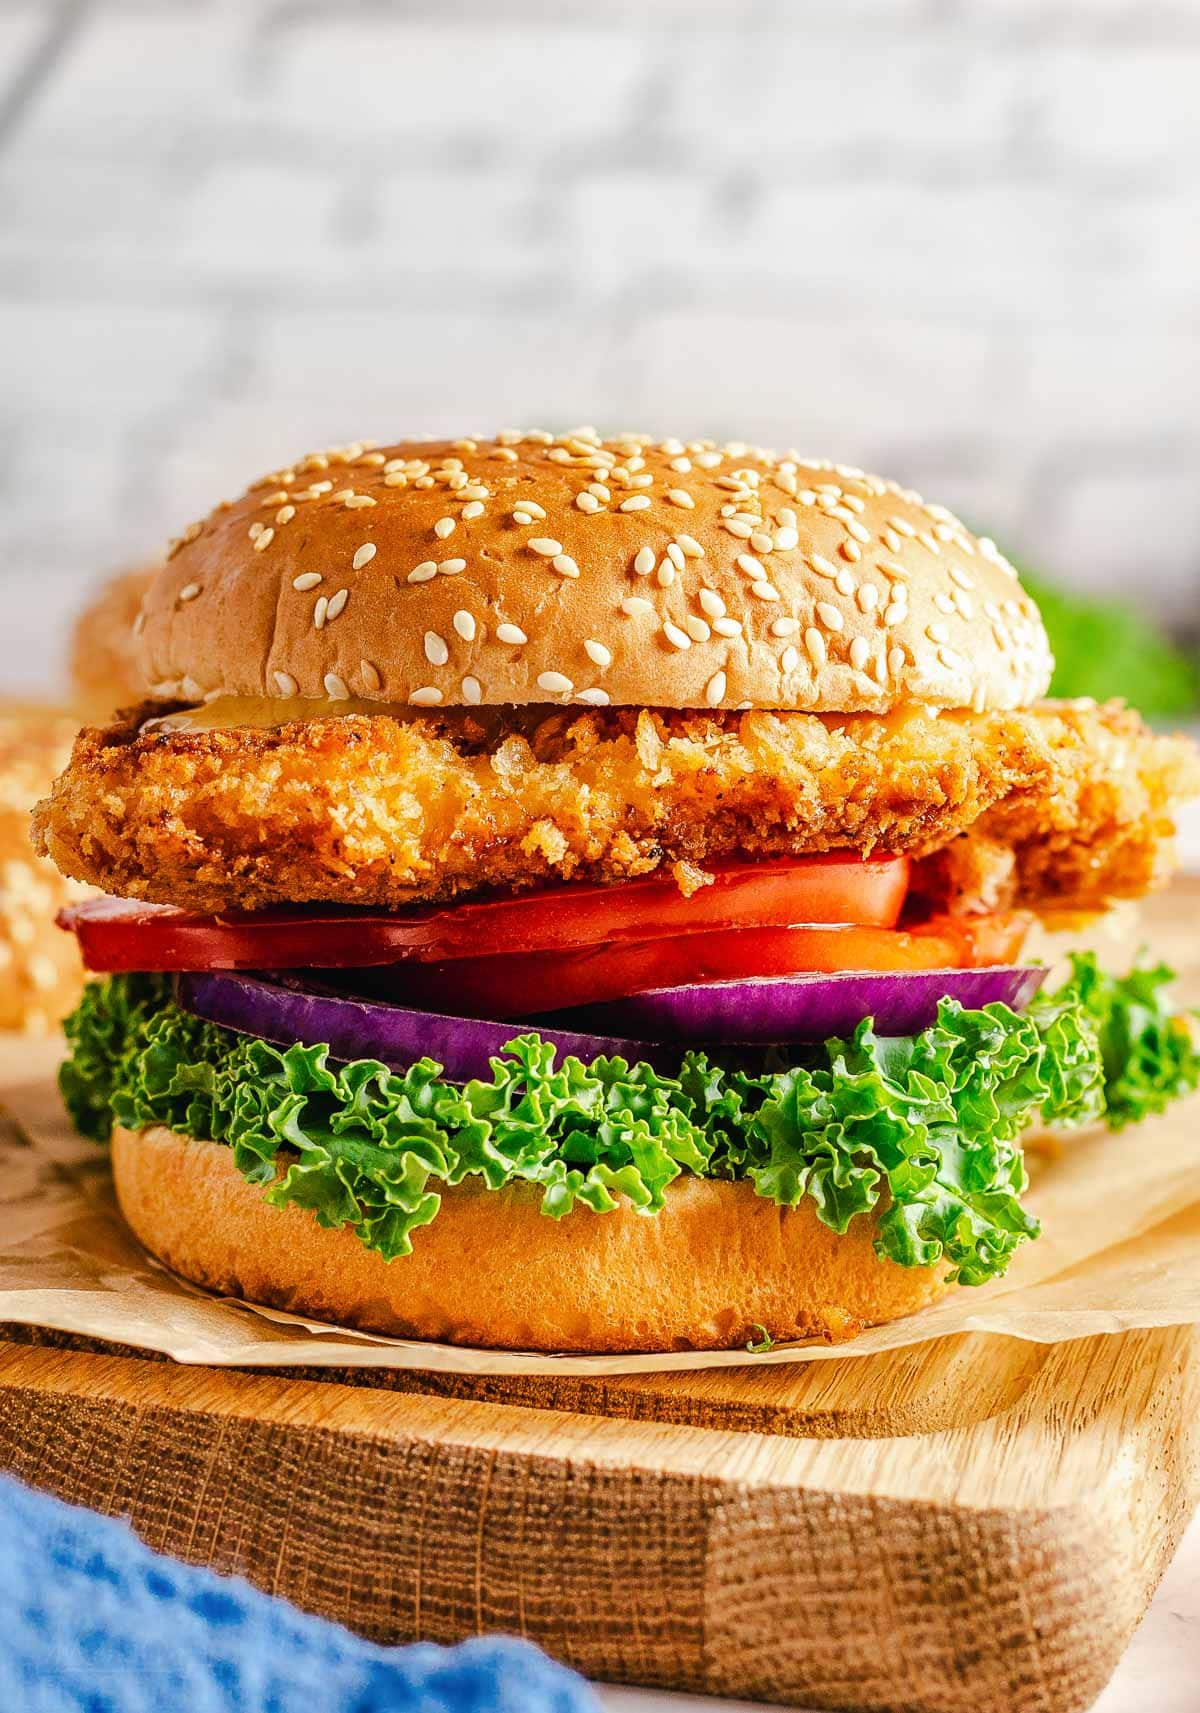 crispy chicken sandwich with all the topping on a seeded hamburger bun sitting on brown parchment on a wood cutting board.